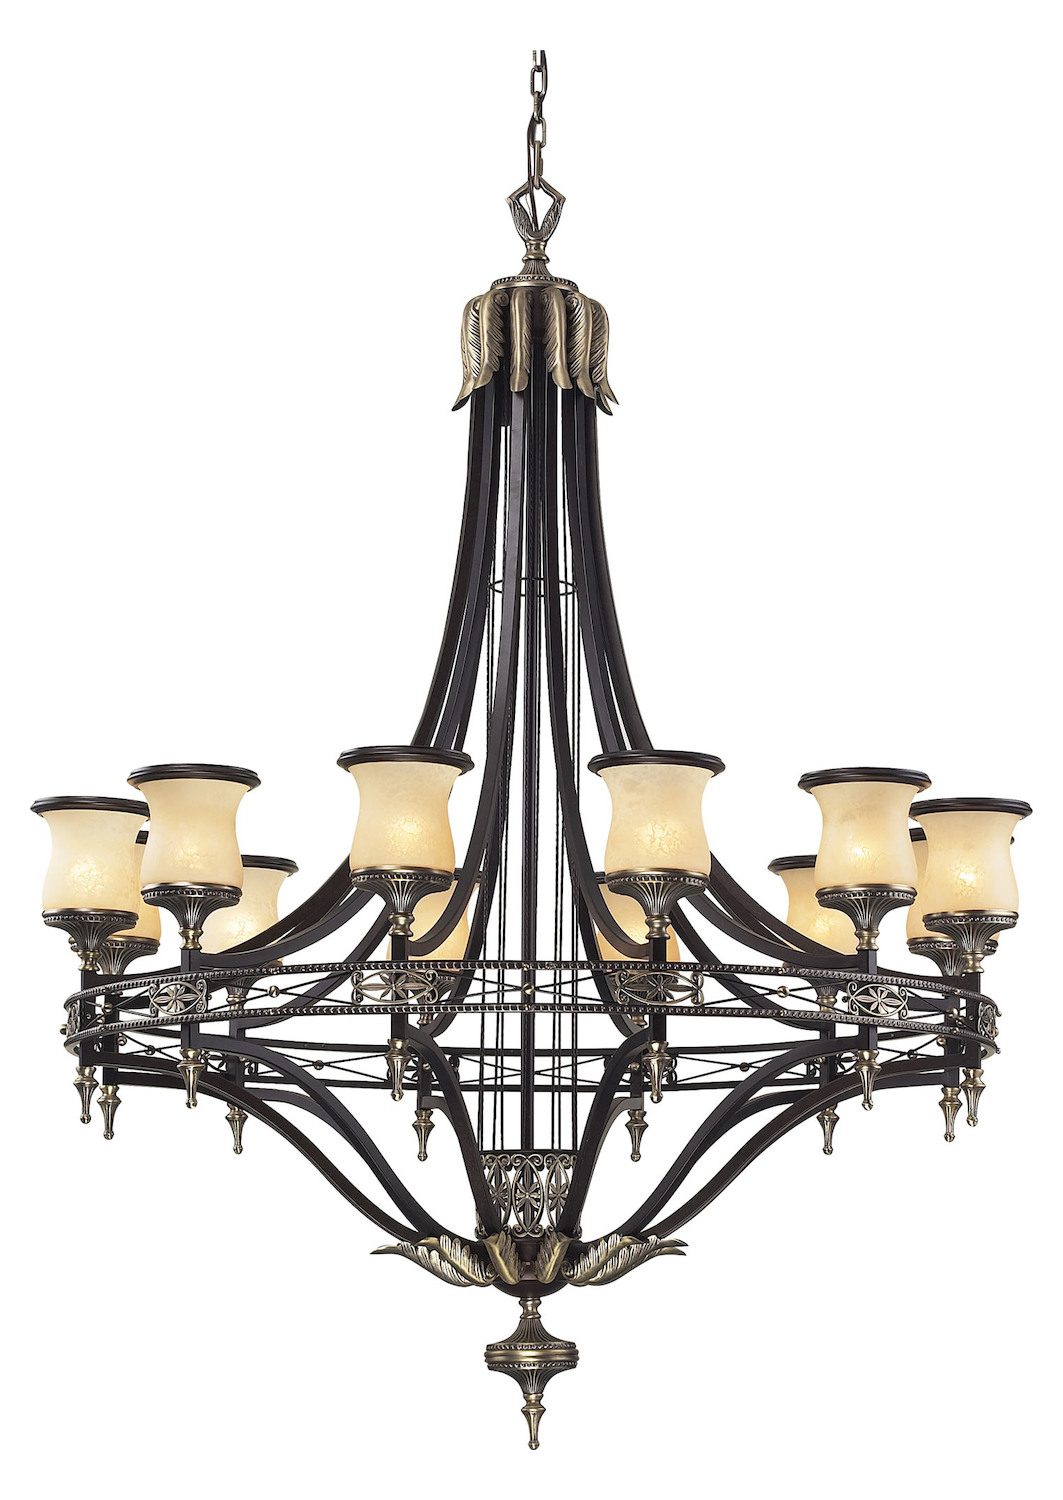 ELK Lighting Twelve Light Antique Bronze & Dark Umber Dark Umber And Marblized Ambe